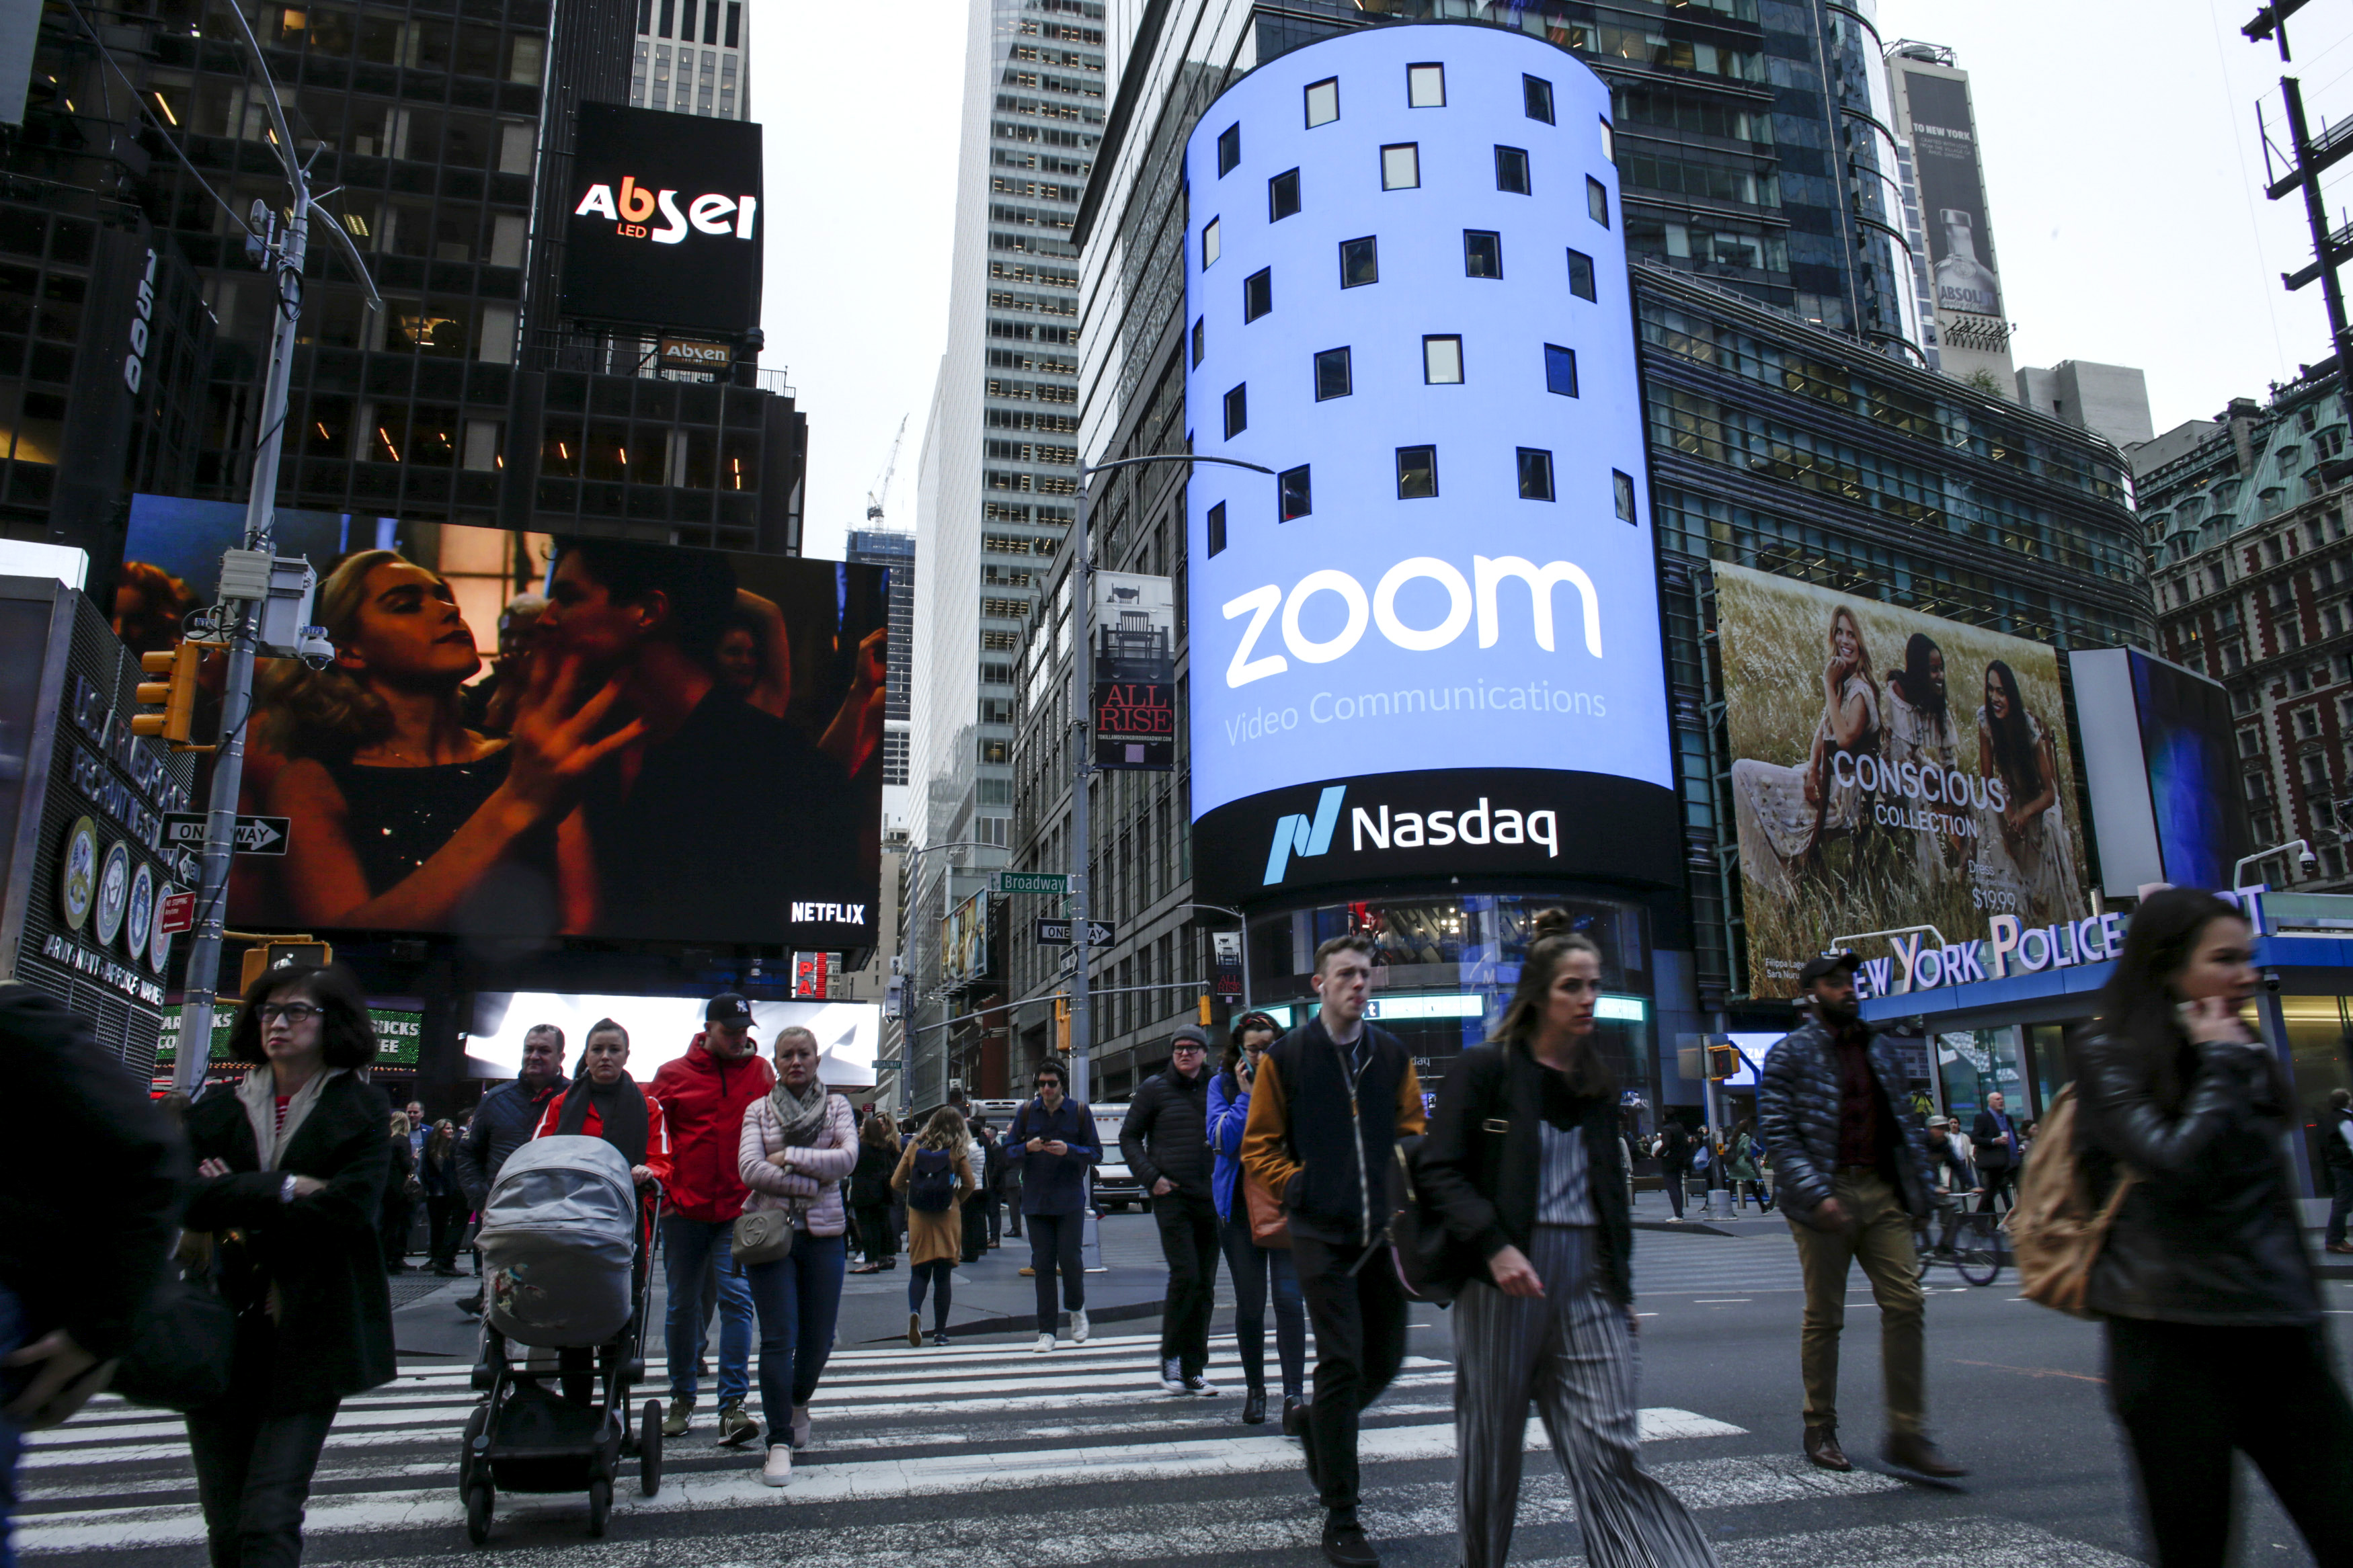 People on the street in New York City in front of an ad for video-conferencing software Zoom on the day it went public on the Nasdaq stock exchange.